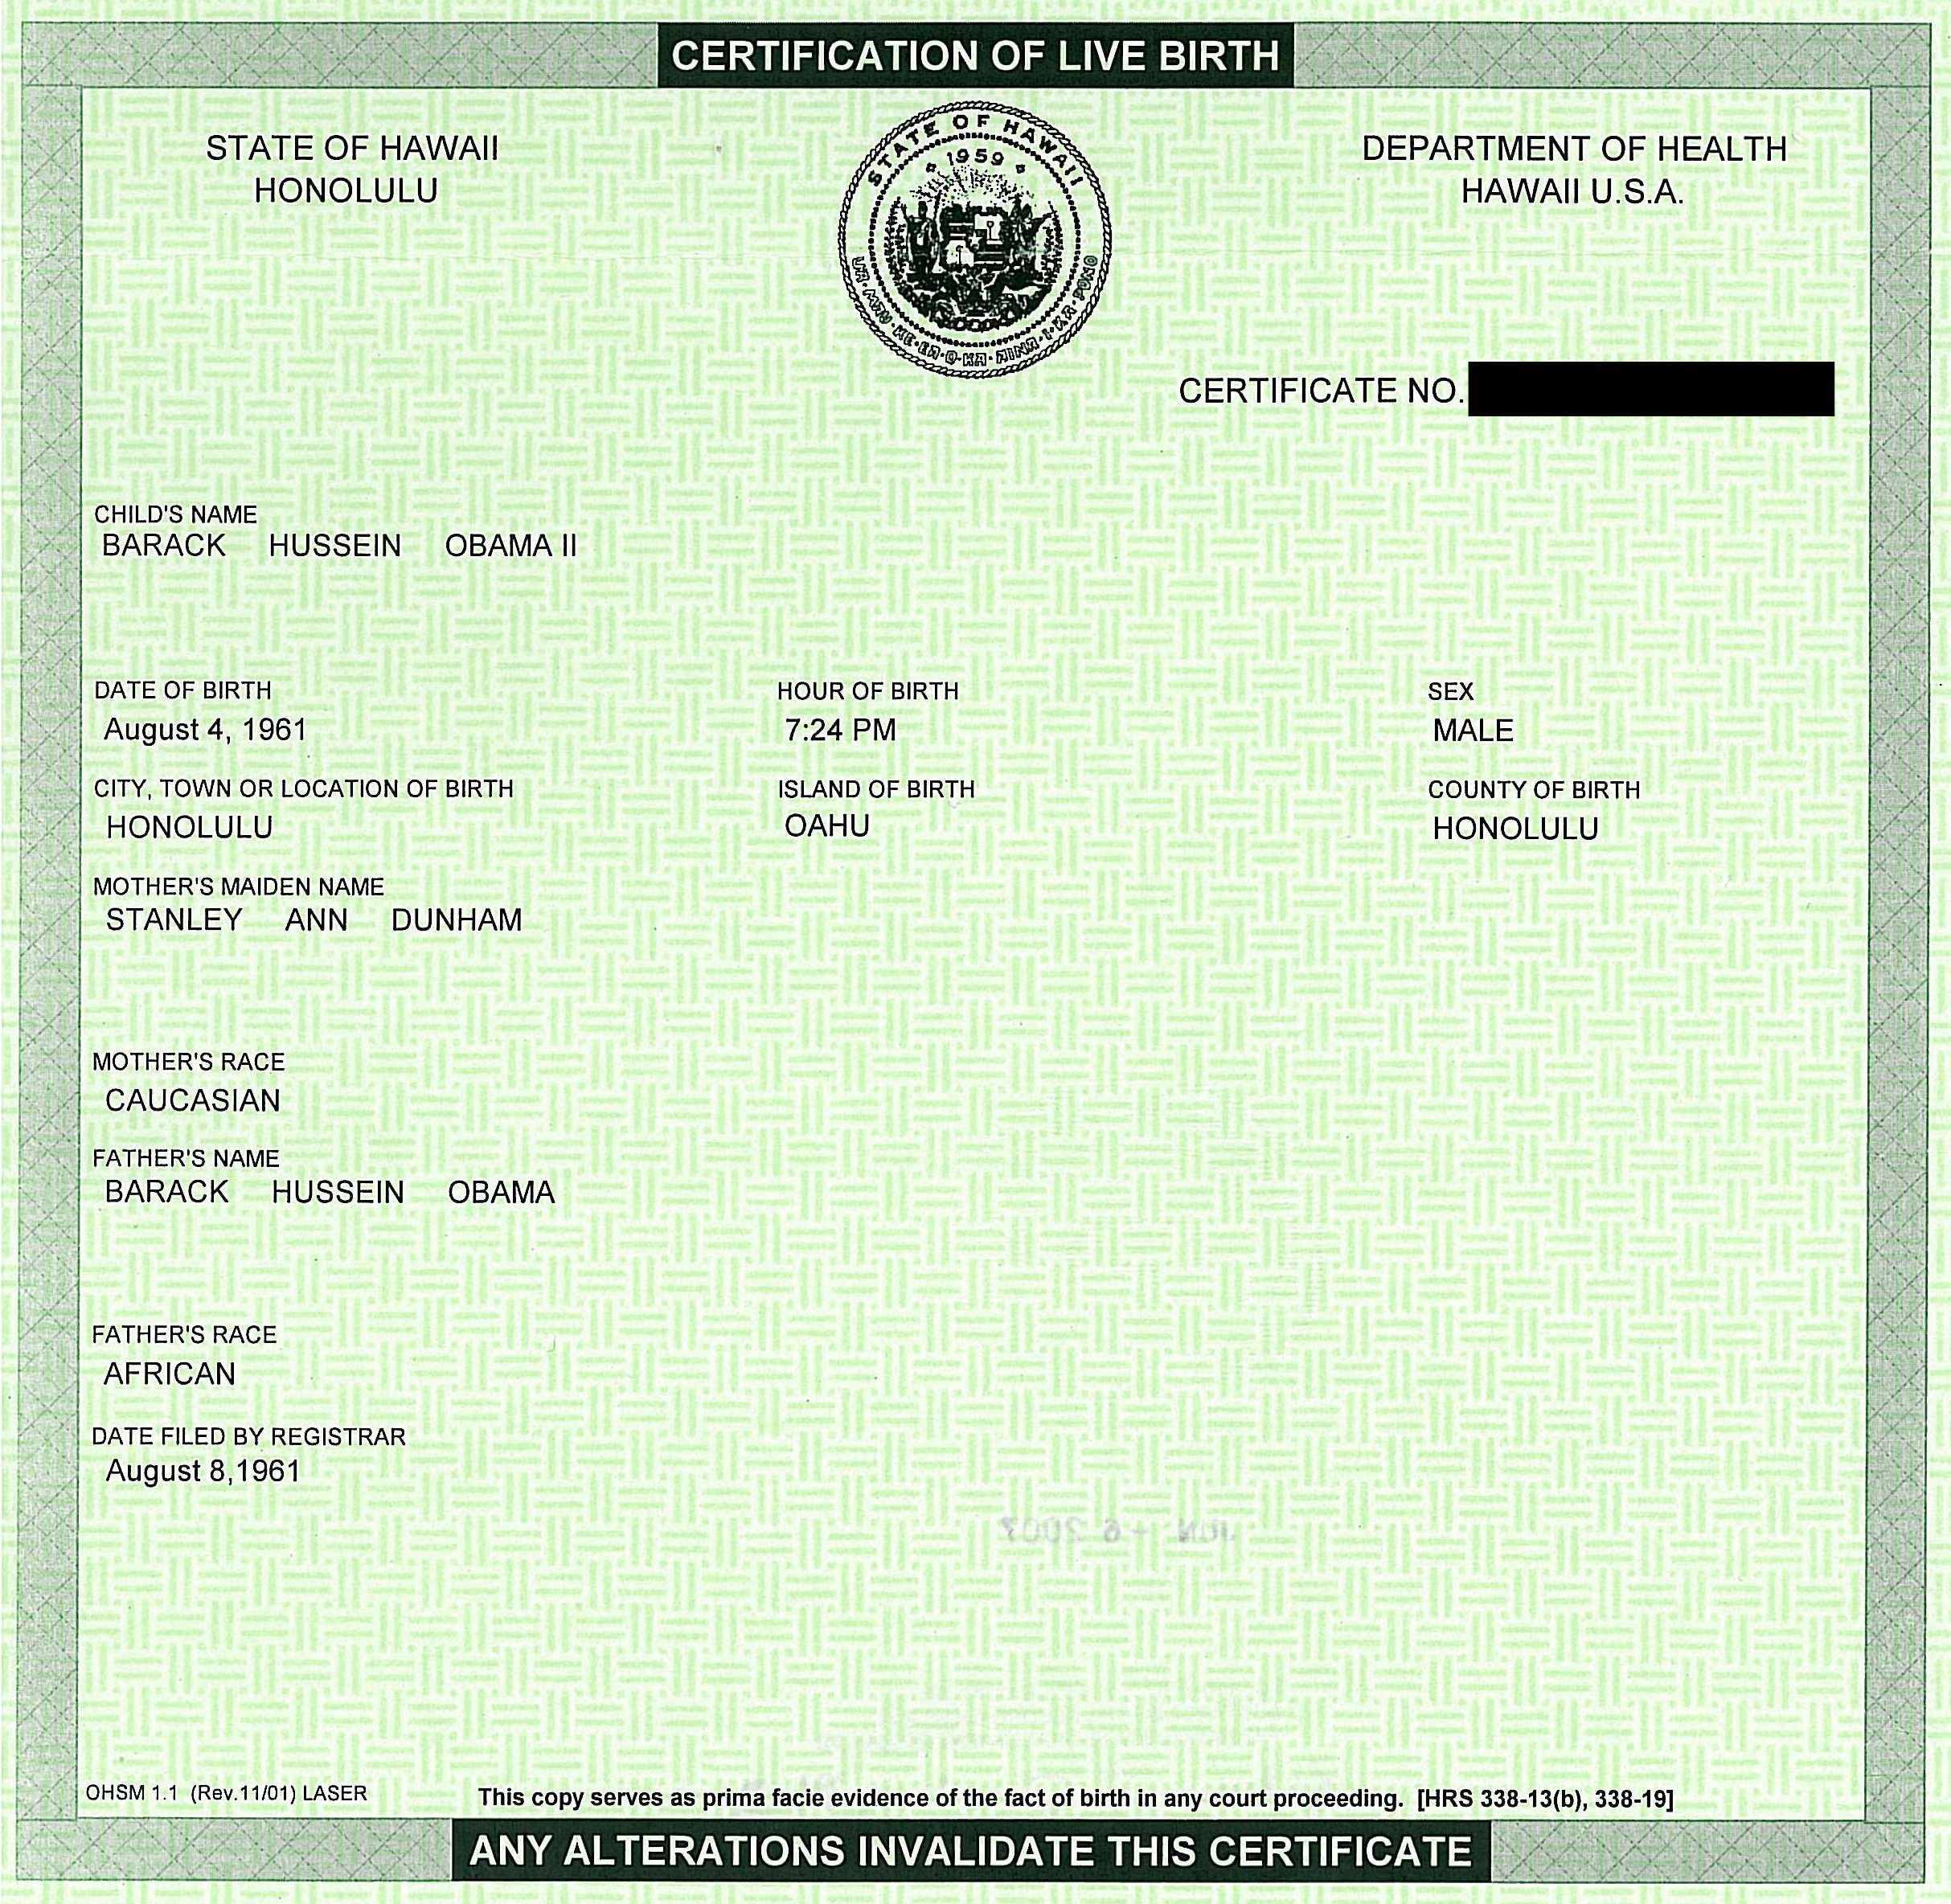 do-wacka do-wacka do-do doodle argue fool Obama Birth Certificate